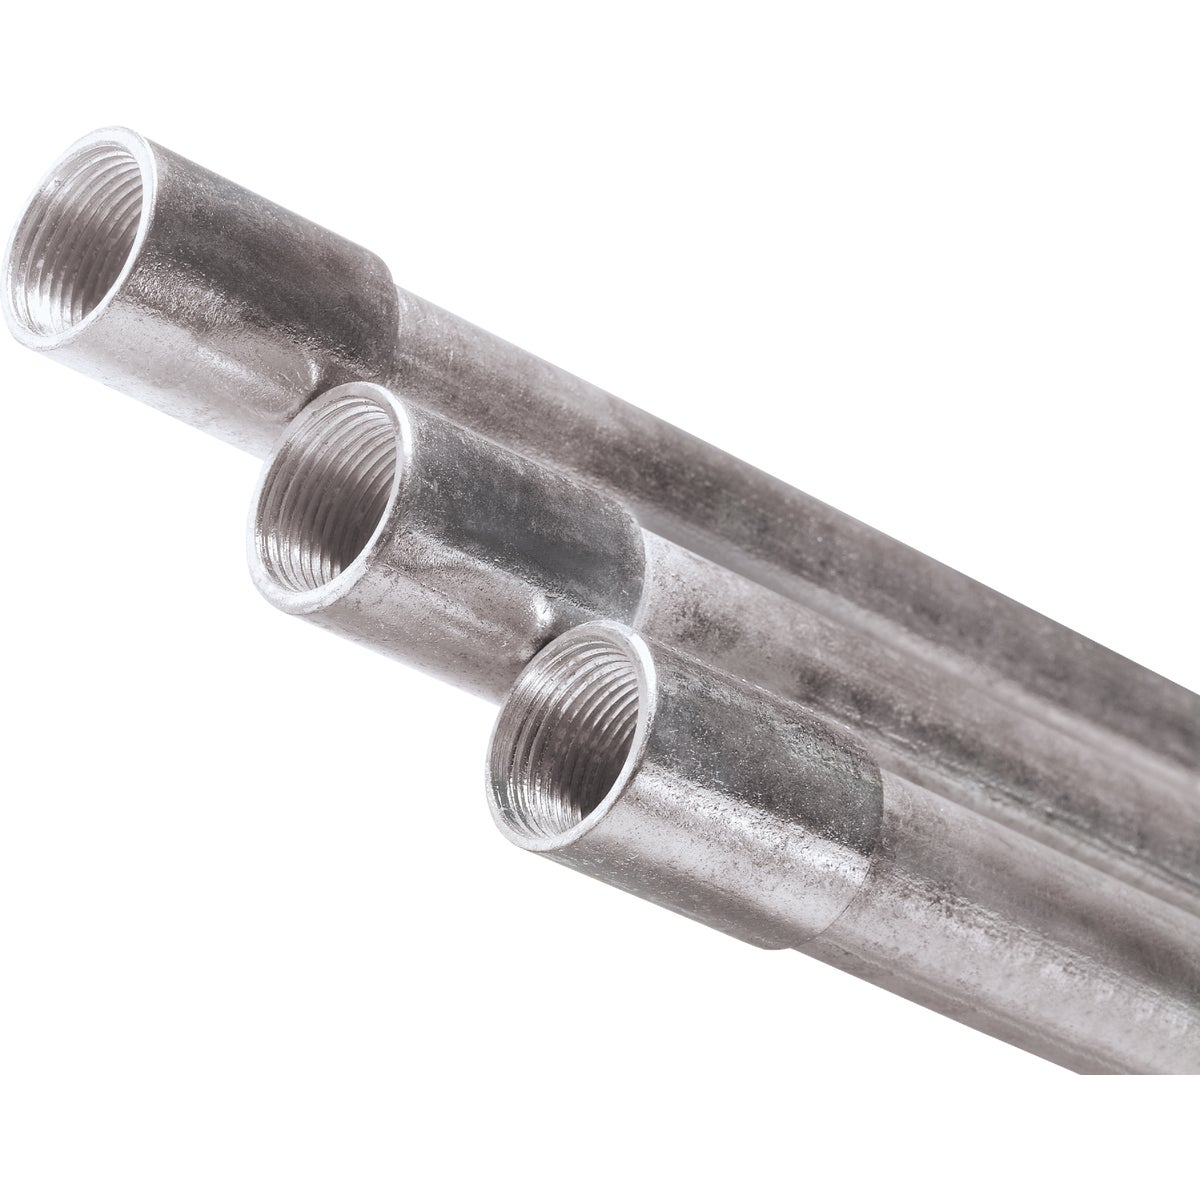 "1/2"" RIGID 10' CONDUIT - 103051 by Allied Tube  Atkore"